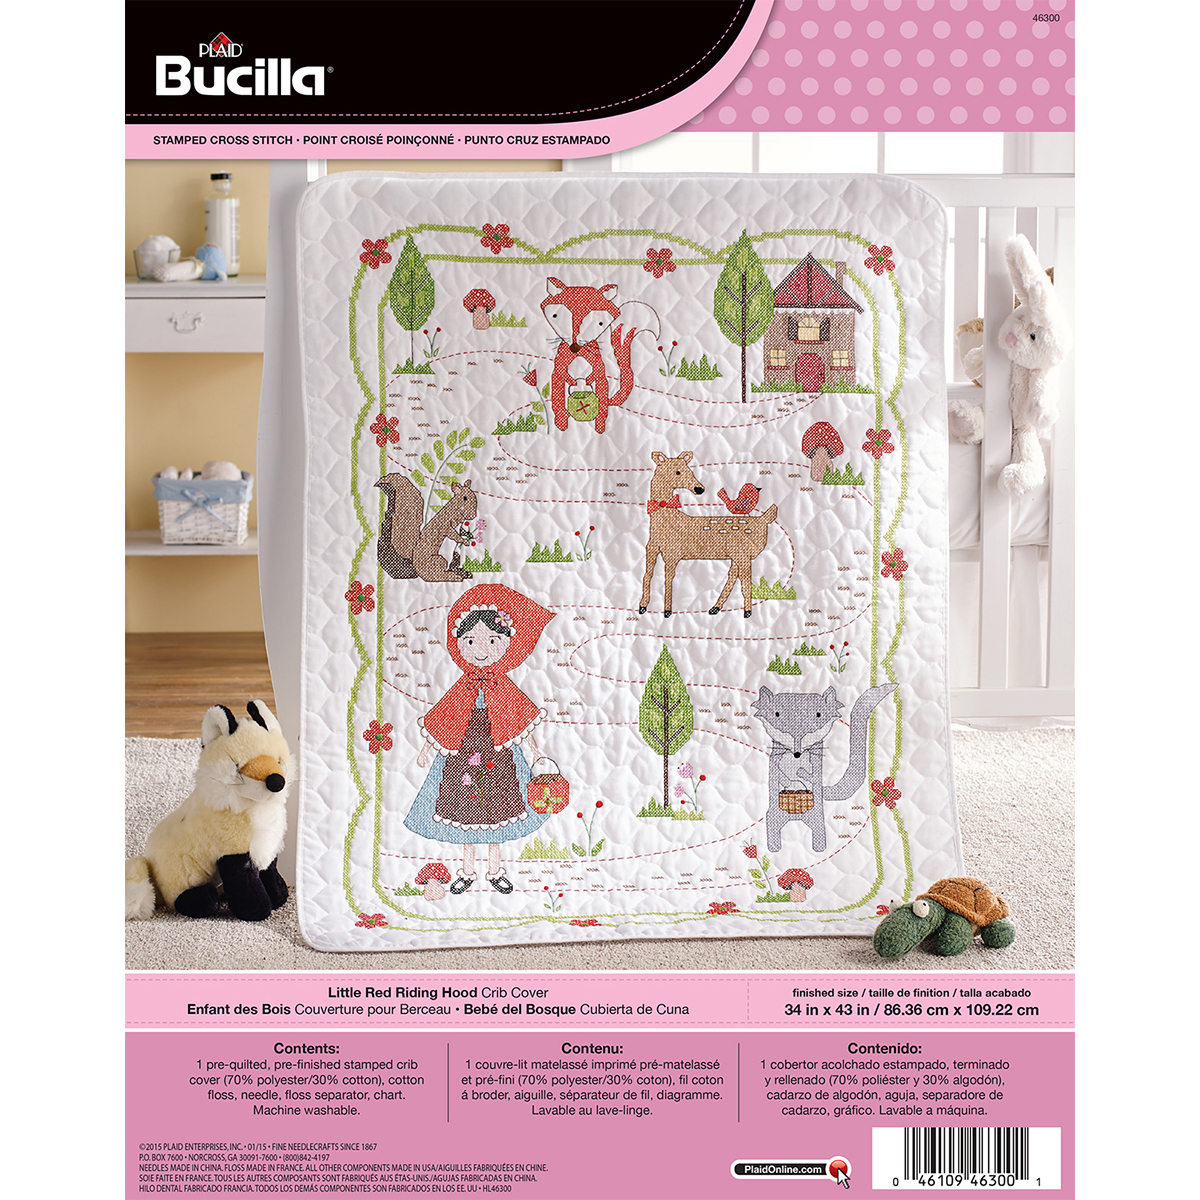 Little Red Riding Hood Crib Cover Stamped Cross Stitch Kit-34 Inch